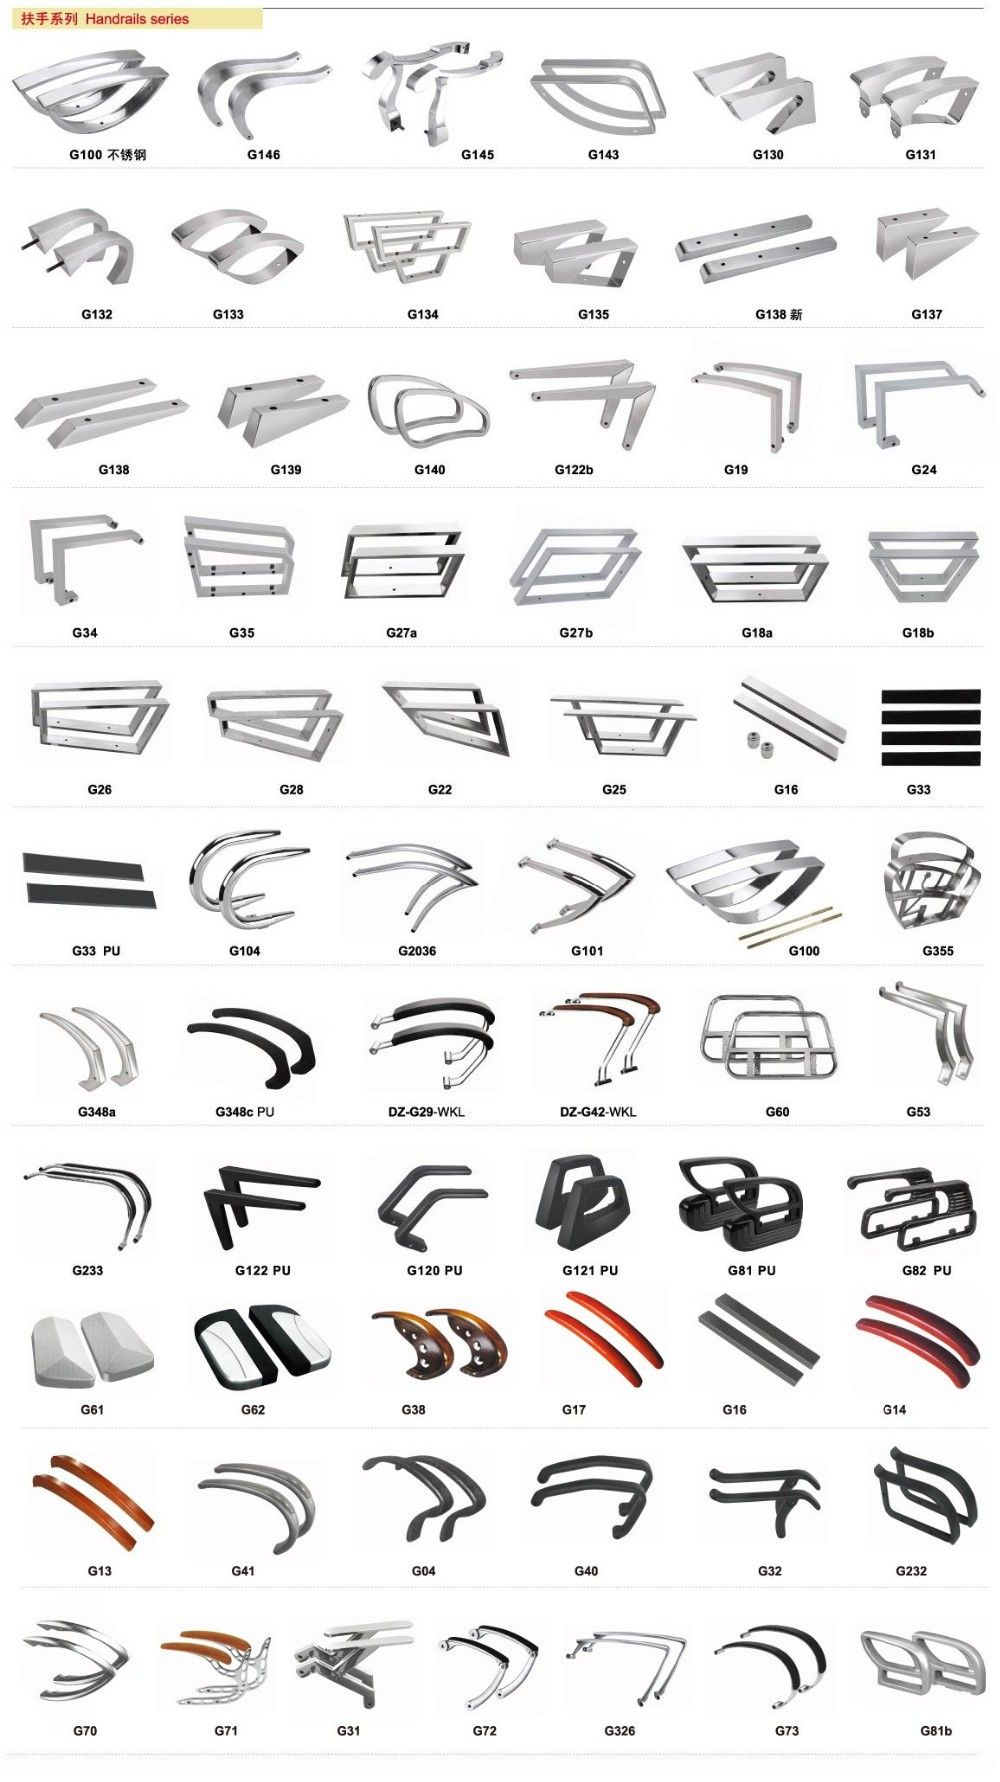 Rolling Chair Accessories In Chennai Drive Medical Bathroom Safety Shower Tub Bench Grey Barber Salon Armrest Stainless Steel Or Pu Office G122 View